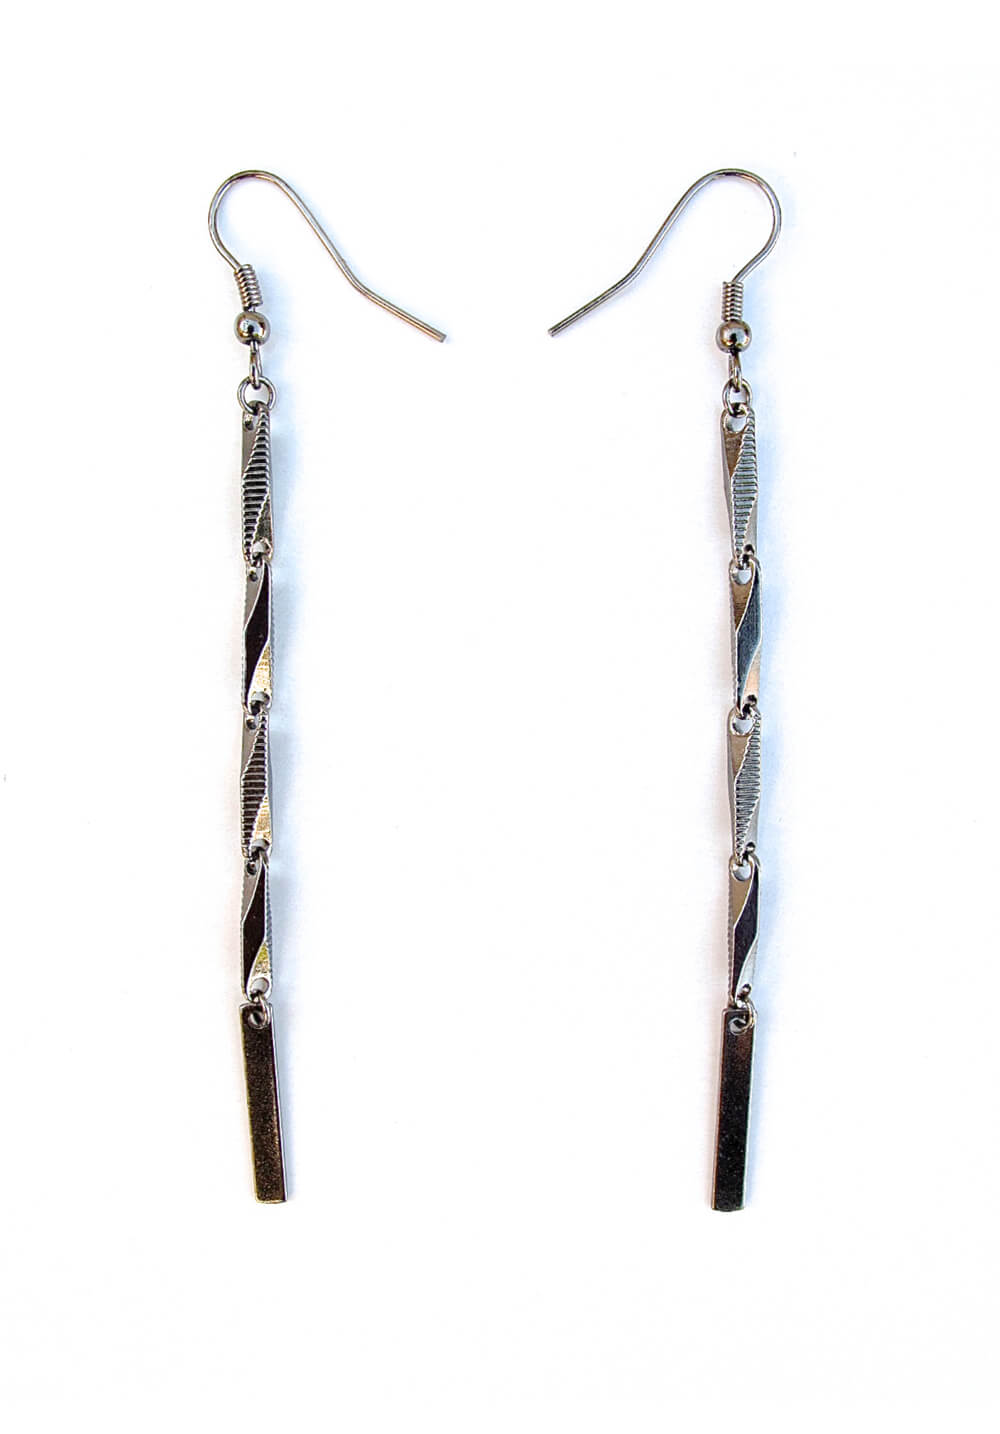 chain & bar earrings - gunmetal